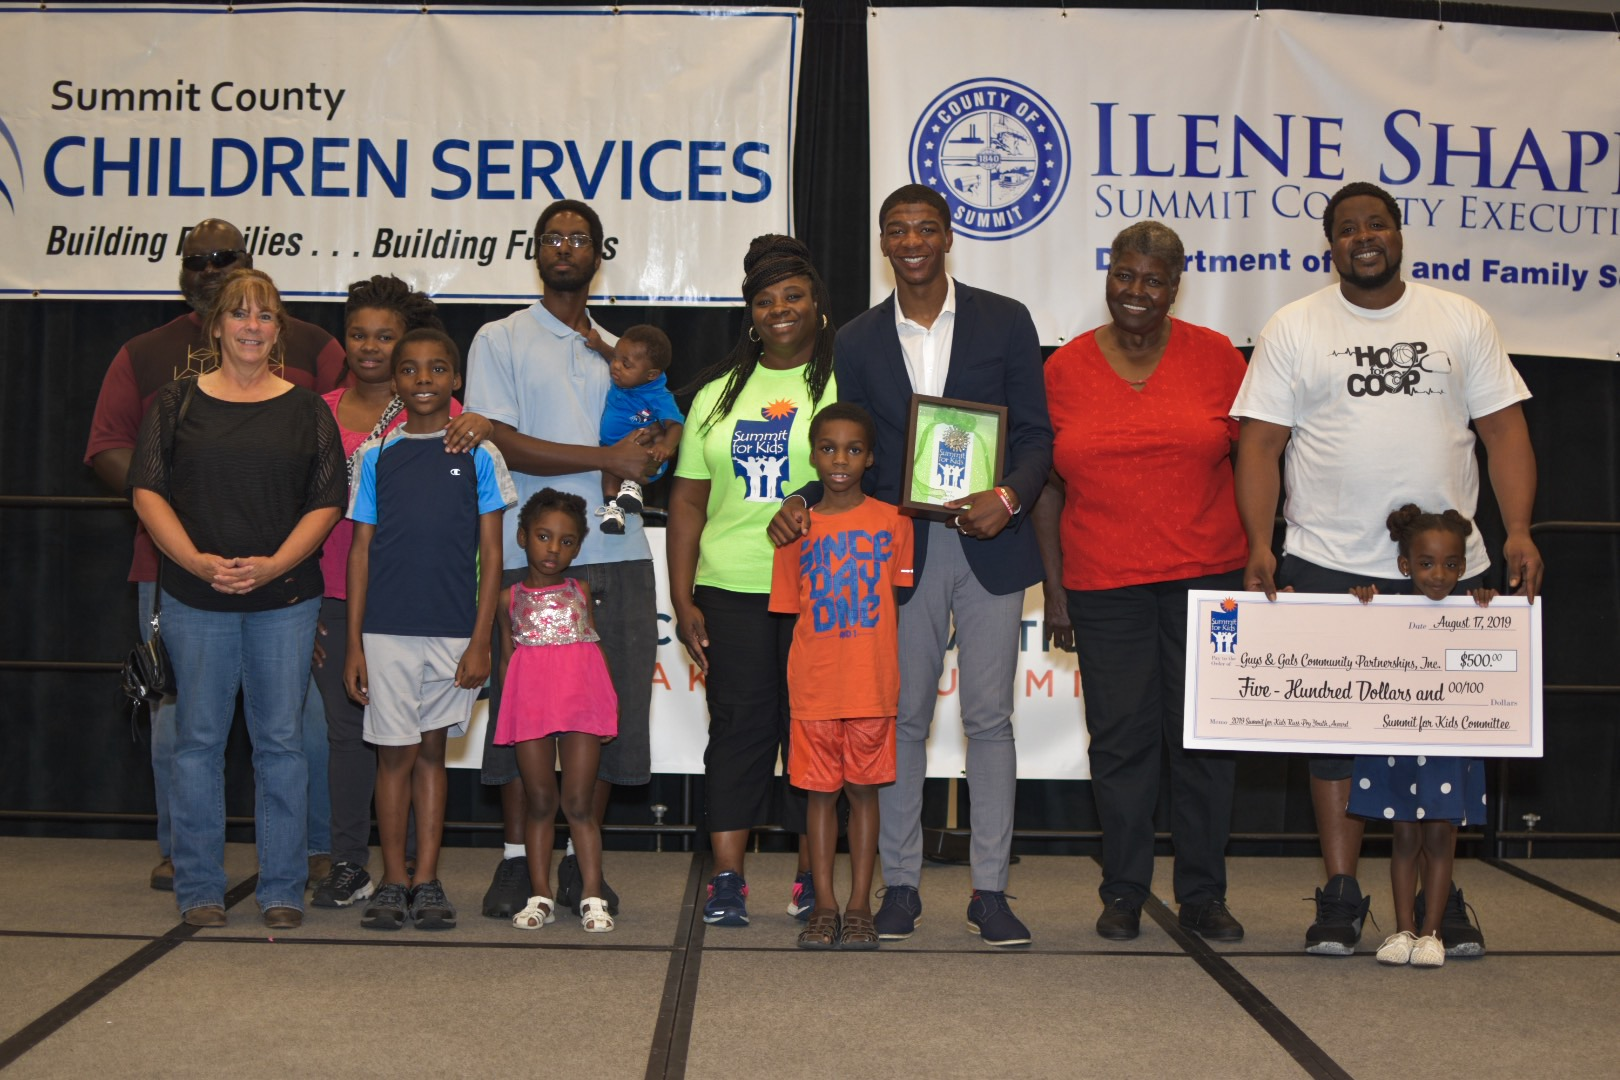 Kofi Boakye with Family and Executive Director Jerome Moss of Guys & Gals Community Partnerships